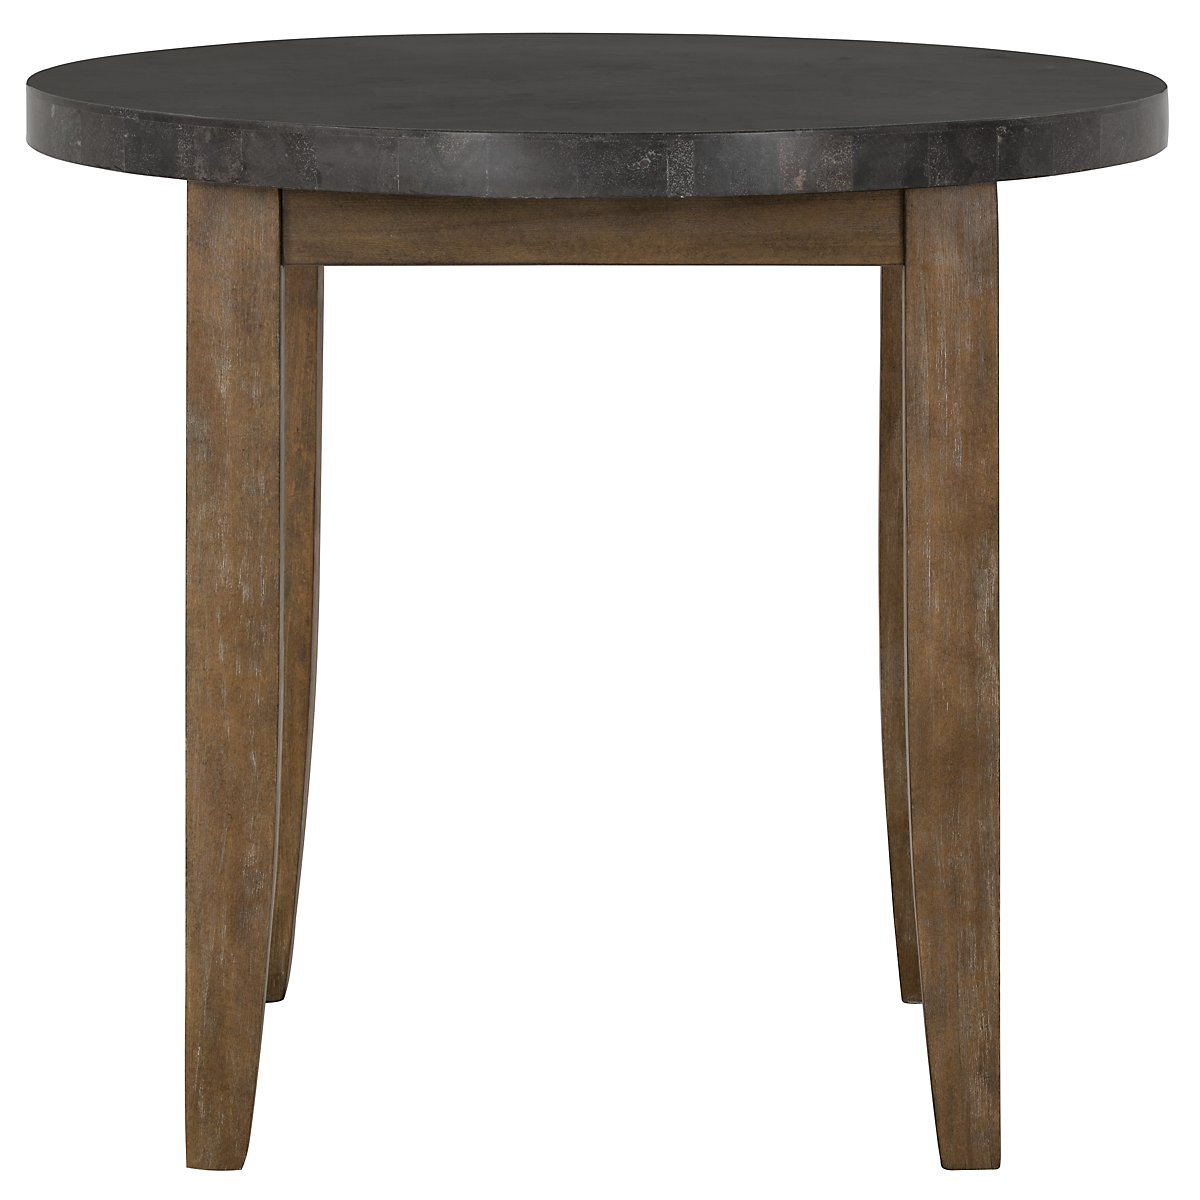 city furniture emmett stone round high dining table. Black Bedroom Furniture Sets. Home Design Ideas